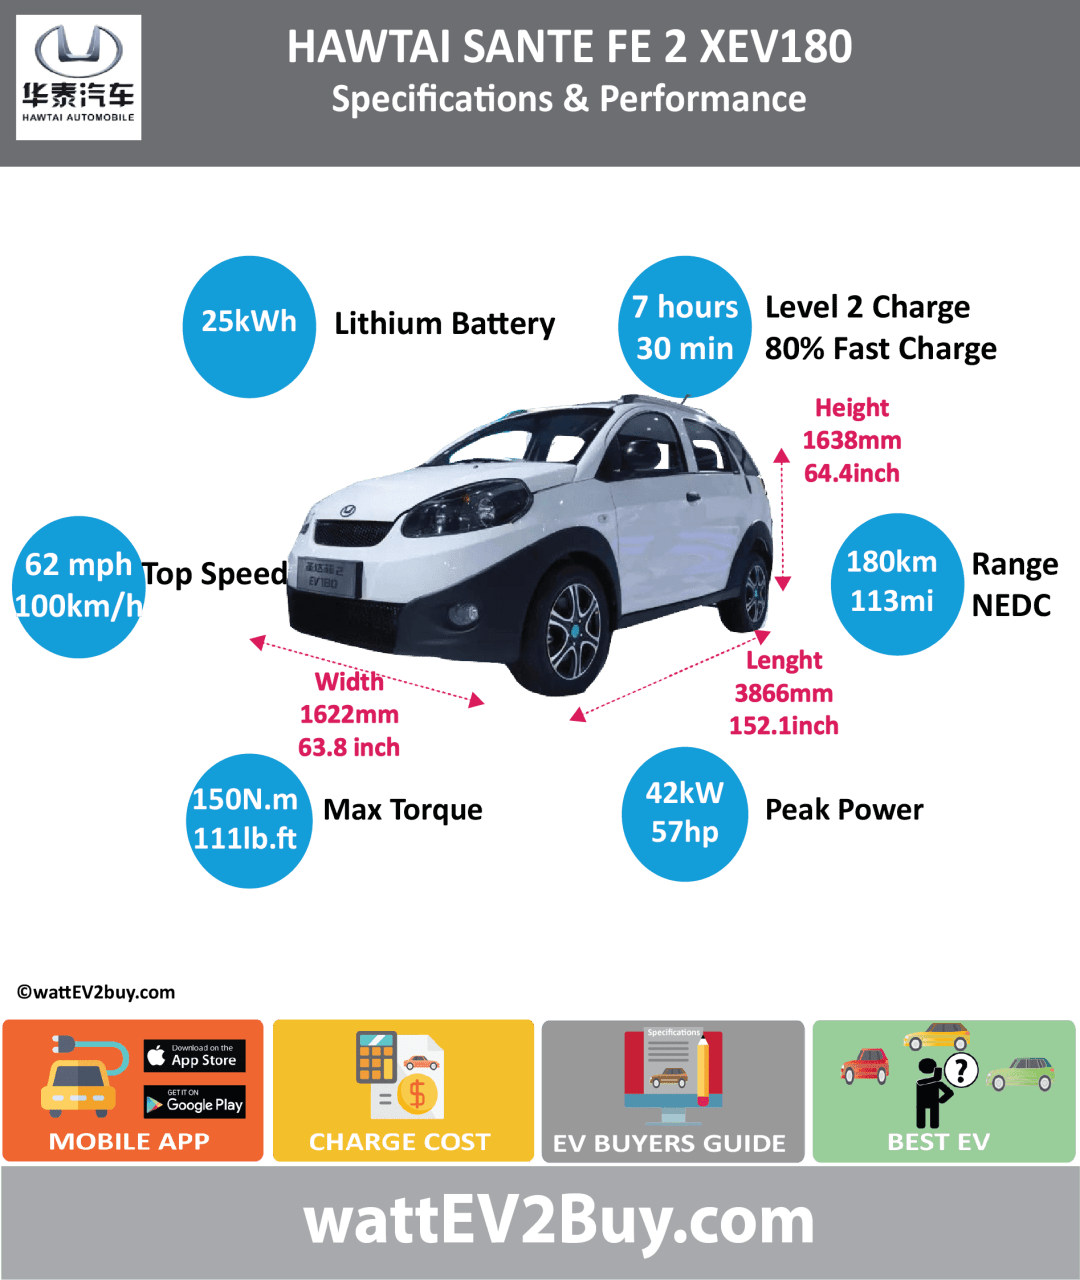 Hawtai Sante Fe 2 EV180 Specs wattev2Buy.com 2018 Battery Chemistry Battery Capacity kWh 25 Battery Nominal rating kWh Voltage V Amps Ah Cells Modules Efficiency Weight (kg) 245 Cell Type SOC Cooling Cycles Battery Type Depth of Discharge (DOD) Energy Density Wh/kg Battery Manufacturer Tianjin Huatai Wei Wei Power Co., Ltd Battery Warranty - years Battery Warranty - km Battery Warranty - miles Battery Electric Range - at constant 38mph Battery Electric Range - at constant 60km/h Battery Electric Range - NEDC Mi 112.5 Battery Electric Range - NEDC km 180 Battery Electric Range - CCM Mi Battery Electric Range - CCM km Battery Electric Range - EPA Mi Battery Electric Range - EPA km Electric Top Speed - mph 62 Electric Top Speed - km/h 100 Acceleration 0 - 100km/h sec Acceleration 0 - 50km/h sec Acceleration 0 - 62mph sec Acceleration 0 - 60mph sec Acceleration 0 - 37.2mph sec Wireless Charging Direct Current Fast Charge kW Charger Efficiency Onboard Charger kW Onboard Charger Optional kW Charging Cord - amps Charging Cord - volts LV 1 Charge kW LV 1 Charge Time (Hours) LV 2 Charge kW LV 2 Charge Time (Hours) 7 LV 3 CCS/Combo kW LV 3 Charge Time (min to 70%) LV 3 Charge Time (min to 80%) 30 LV 3 Charge Time (mi) LV 3 Charge Time (km) Supercharger Charging System kW Charger Output Charge Connector Power Outlet kW Power Outlet Amps MPGe Combined - miles MPGe Combined - km MPGe City - miles MPGe City - km MPGe Highway - miles MPGe Highway - km Max Power - hp (Electric Max) 57 Max Power - kW (Electric Max) 41.8 Max Torque - lb.ft (Electric Max) 110.635787 Max Torque - N.m (Electric Max) 150 Drivetrain Generator Motor Type Electric Motor Manufacturer Electric Motor Output kW Electric Motor Output hp Transmission Electric Motor - Rear Max Power - hp (Rear) Max Power - kW (Rear) Max Torque - lb.ft (Rear) Max Torque - N.m (Rear) Electric Motor - Front Max Power - hp (Front) Max Power - kW (Front) Max Torque - lb.ft (Front) Max Torque - N.m (Front) Energy Consumption kWh/100km E